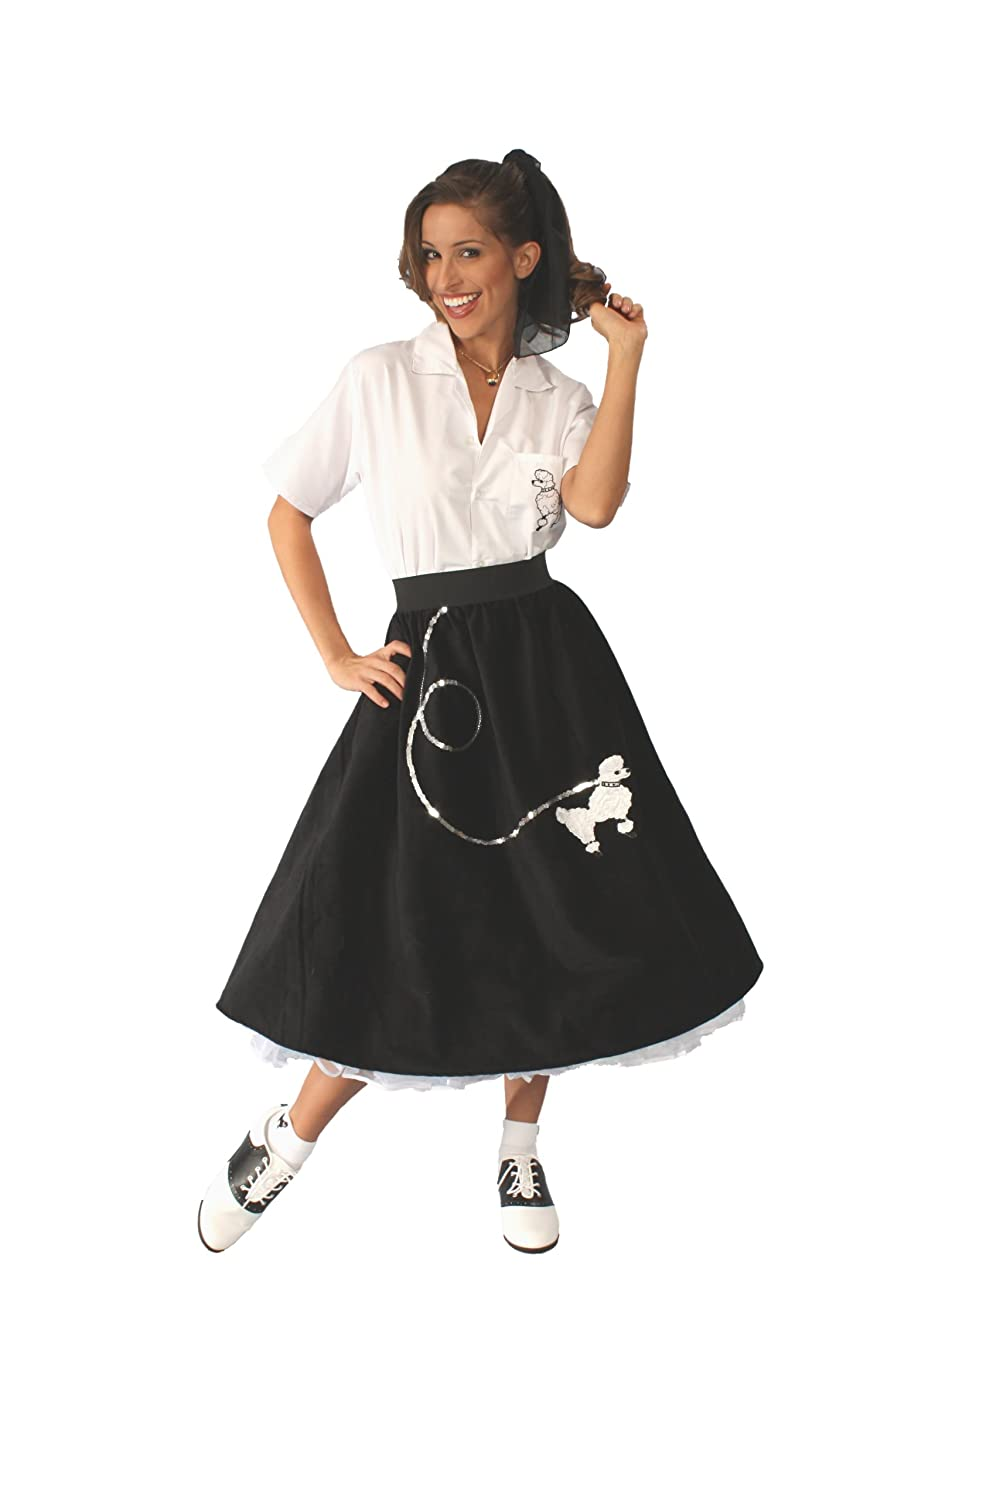 50s Costumes | 50s Halloween Costumes Alexanders Costumes Poodle Skirt $50.00 AT vintagedancer.com